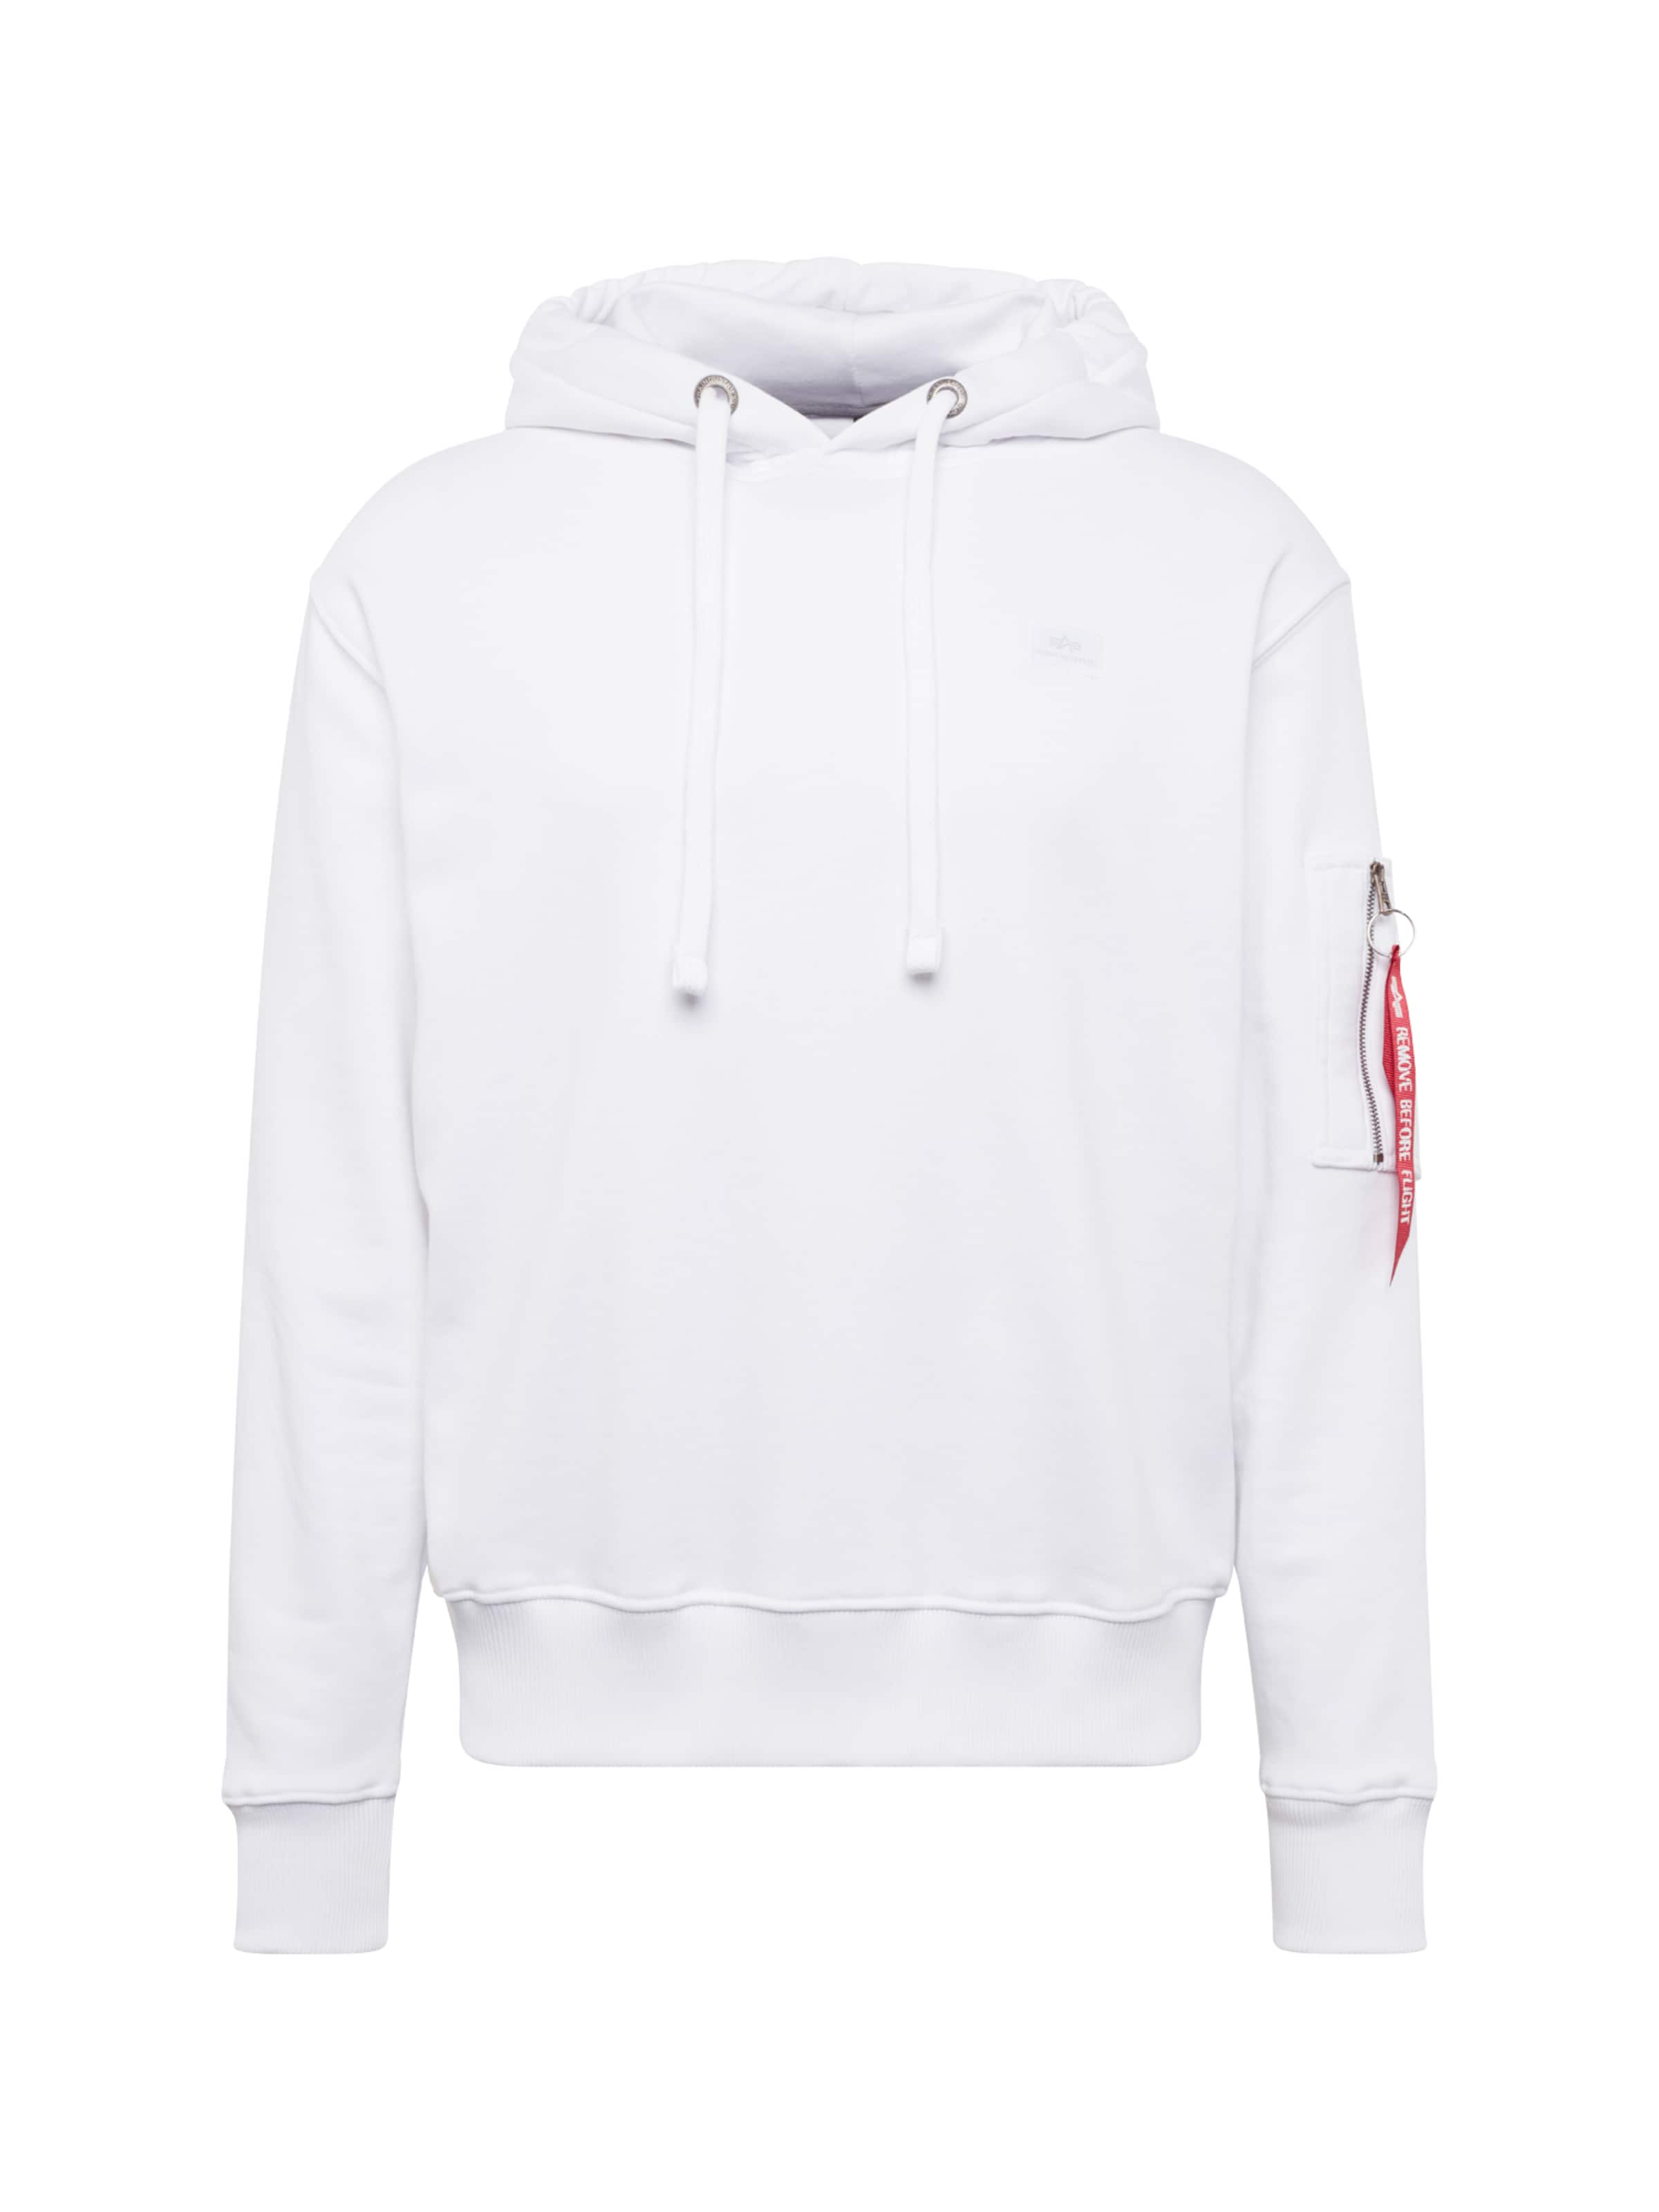 Alpha In Industries Hoody 'x fit' Weiß lFK1Jc3Tu